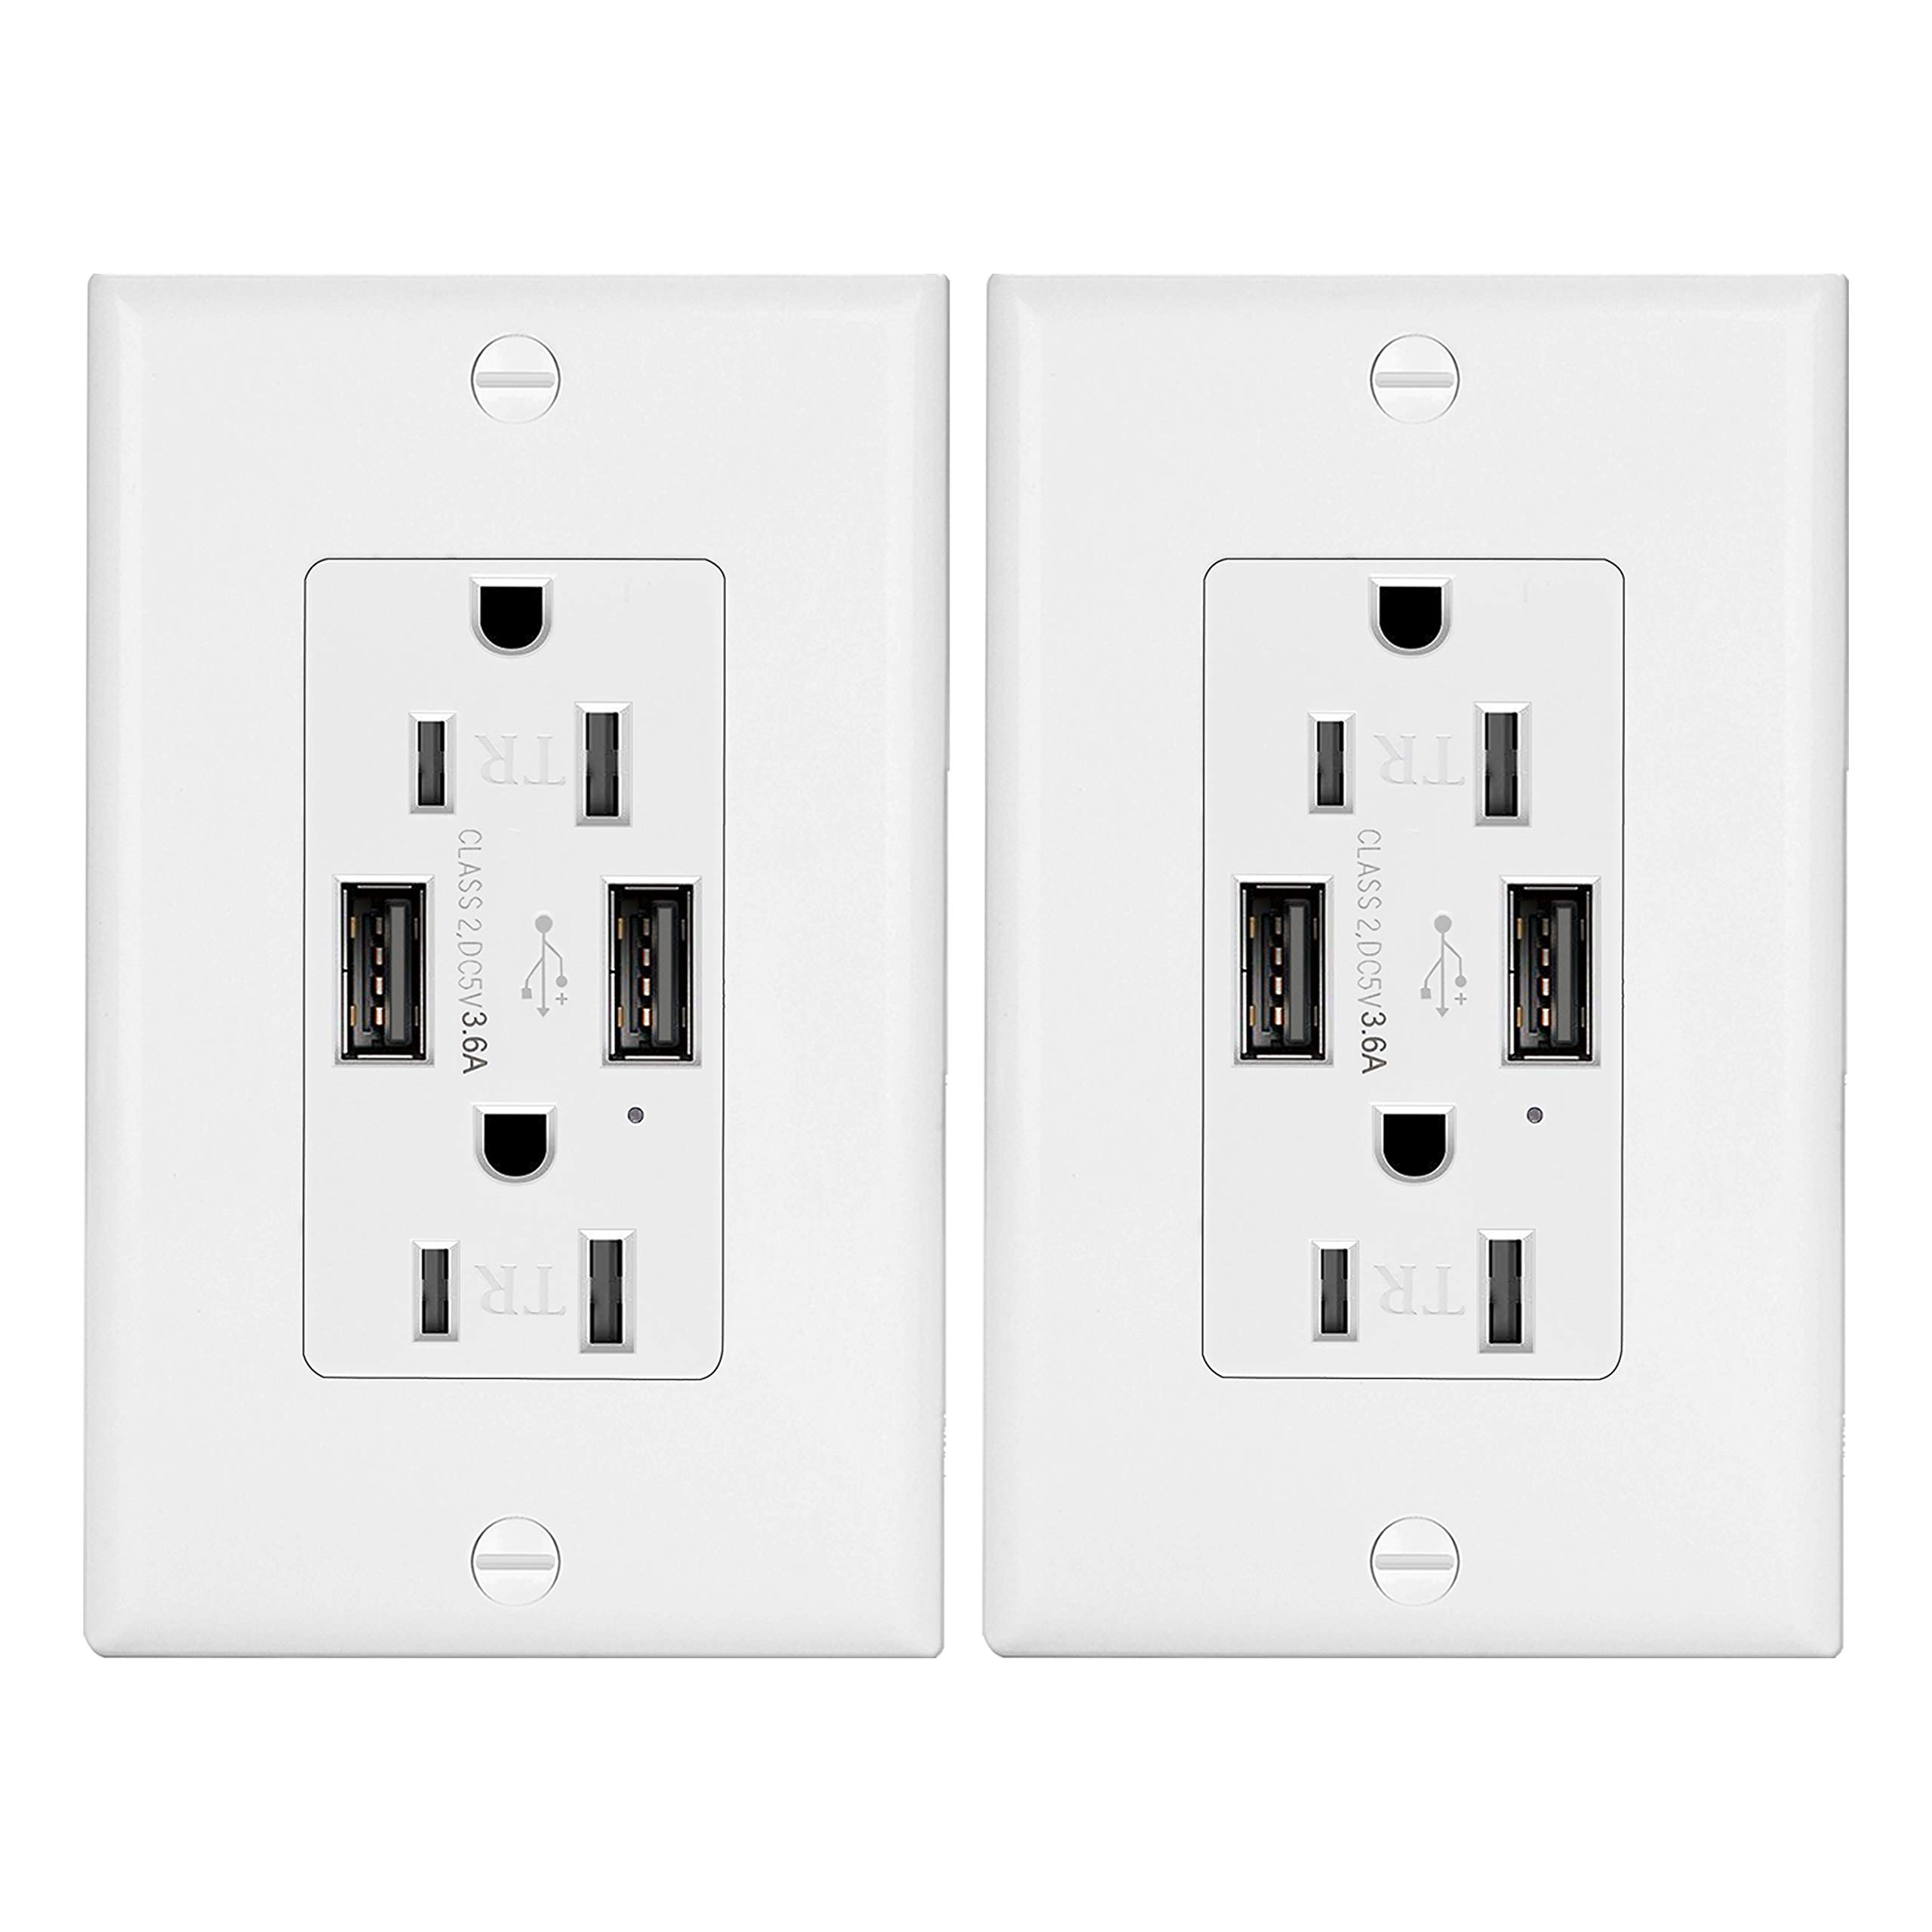 2 Pack - ELECTECK 3.6A USB Outlet, 15A Tamper-Resistant Receptacle with Dual Type-A Charging Ports, Stable Wall Charger for iPhone Xs/XR/X, Samsung Galaxy S9/S8/S7, LG, HTC & Other Smartphones, White